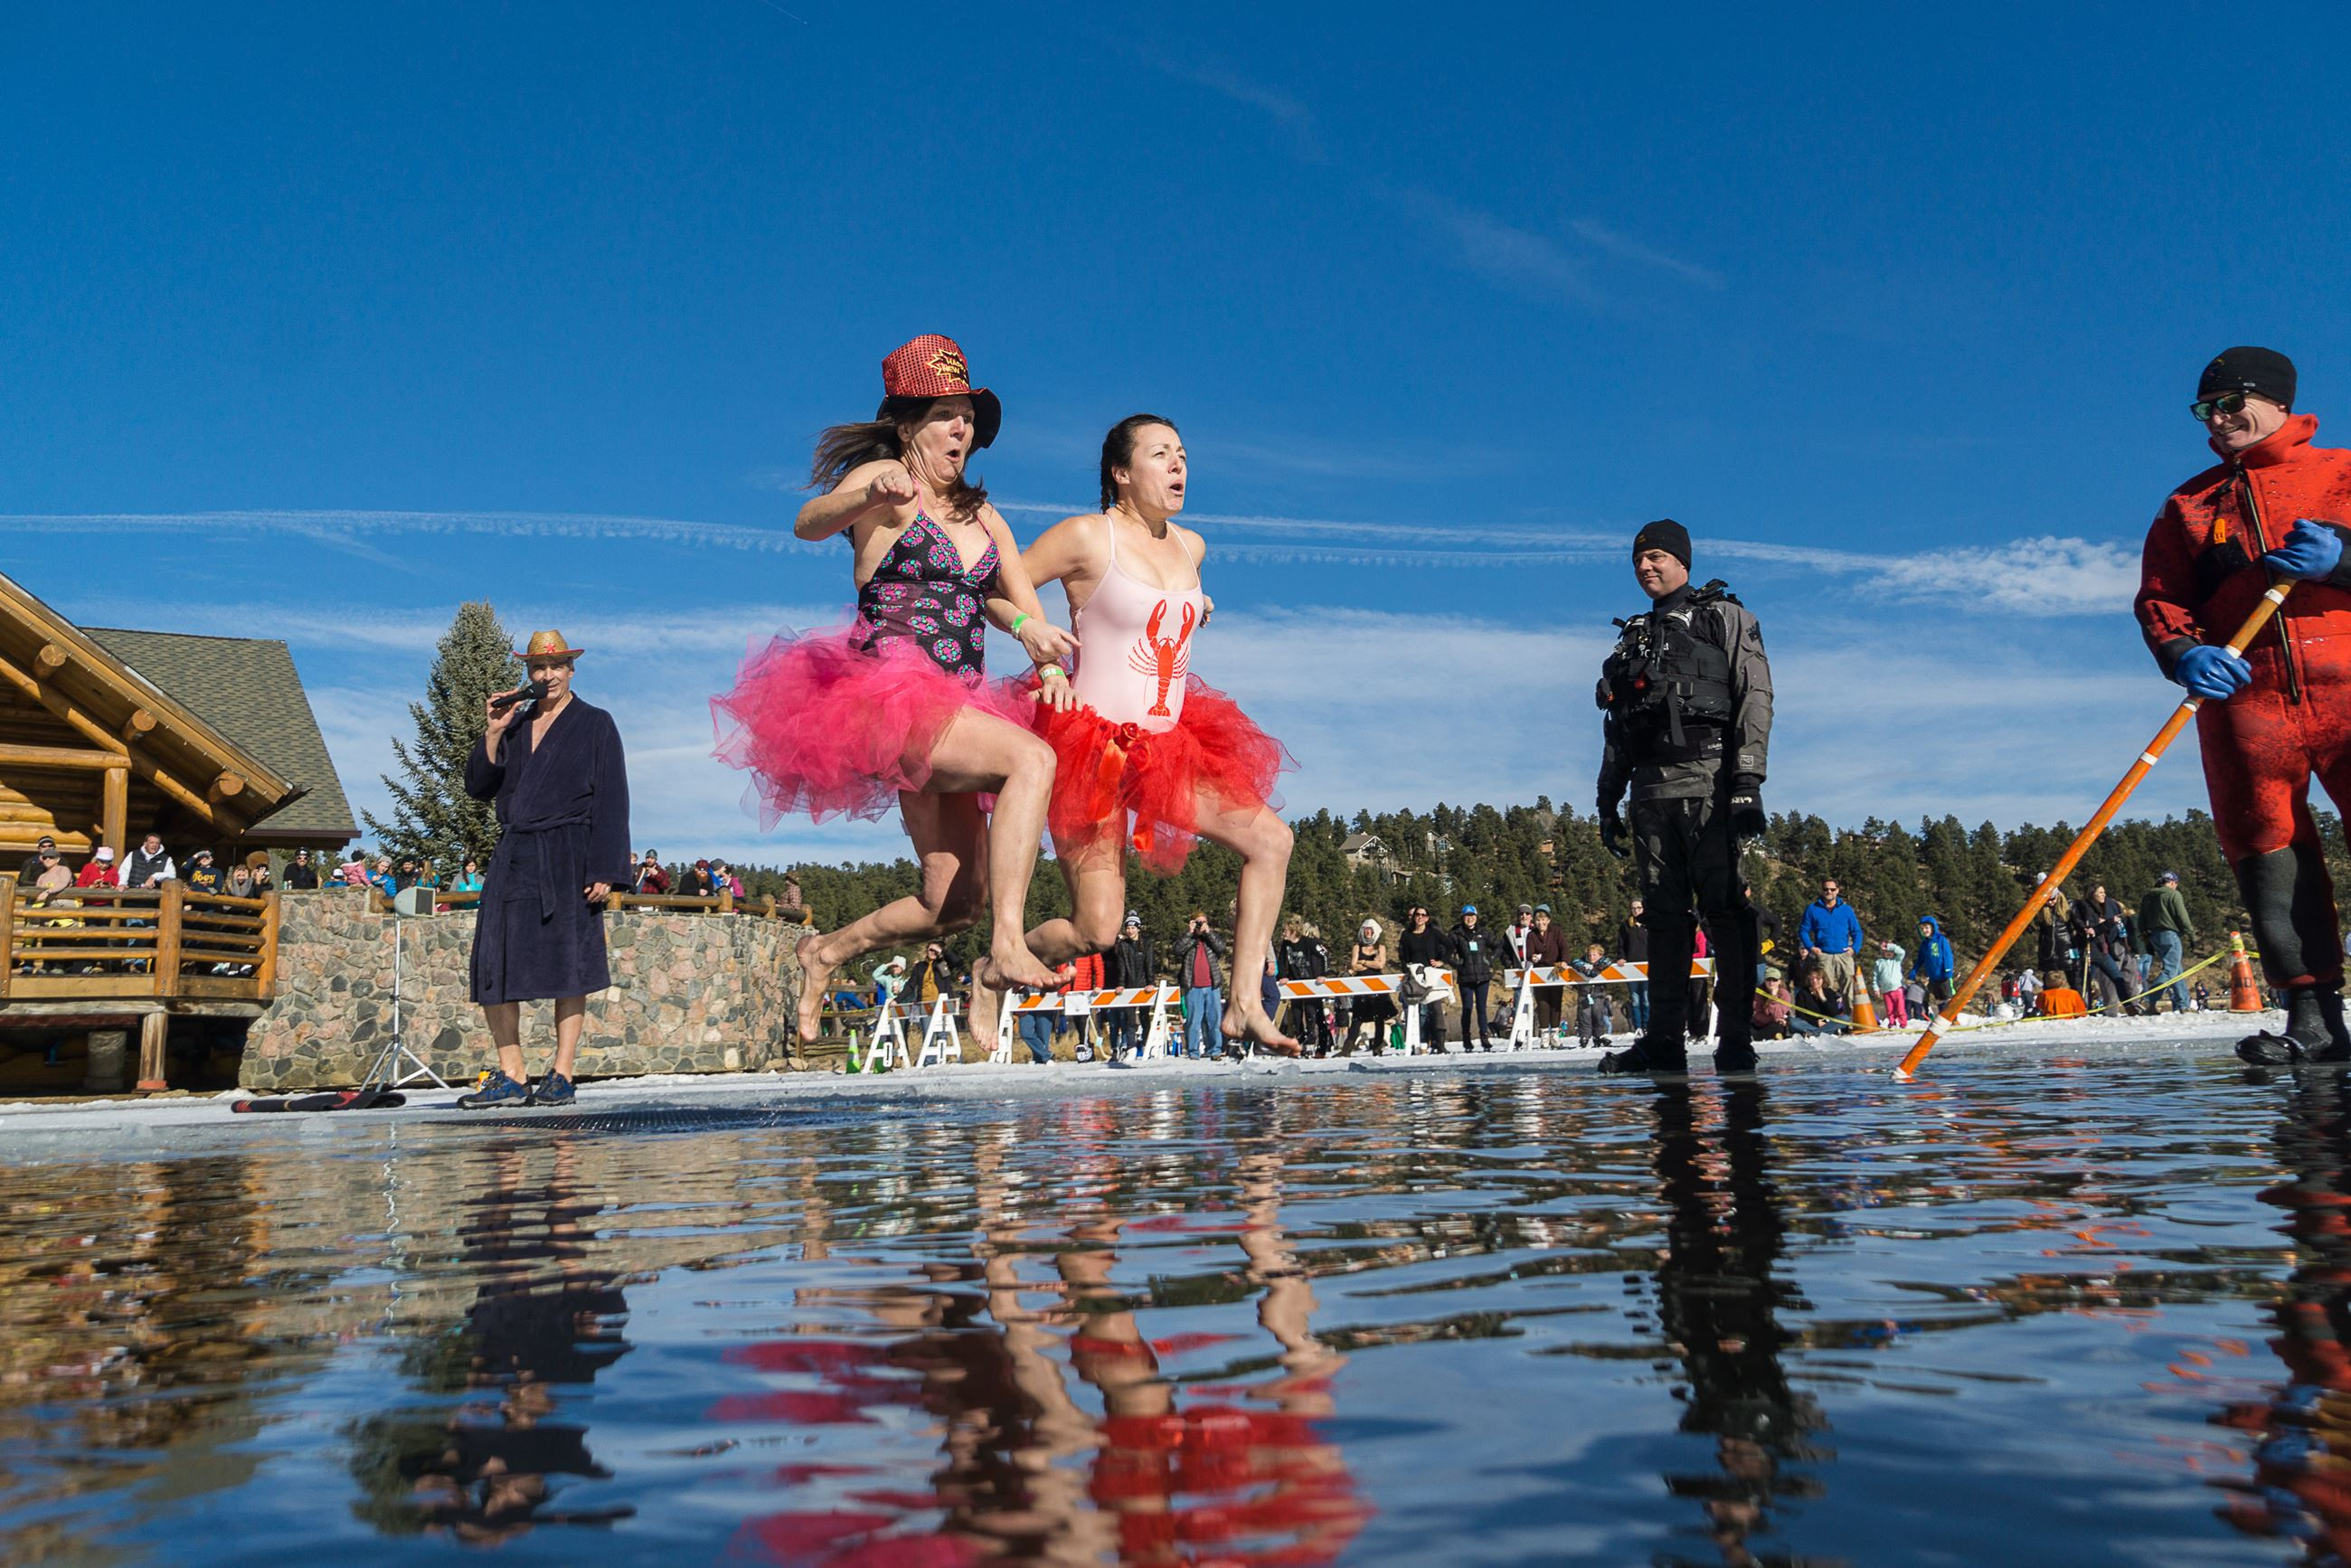 EPRD Lake Plunge  Two Women in Costumes Jumping in Water